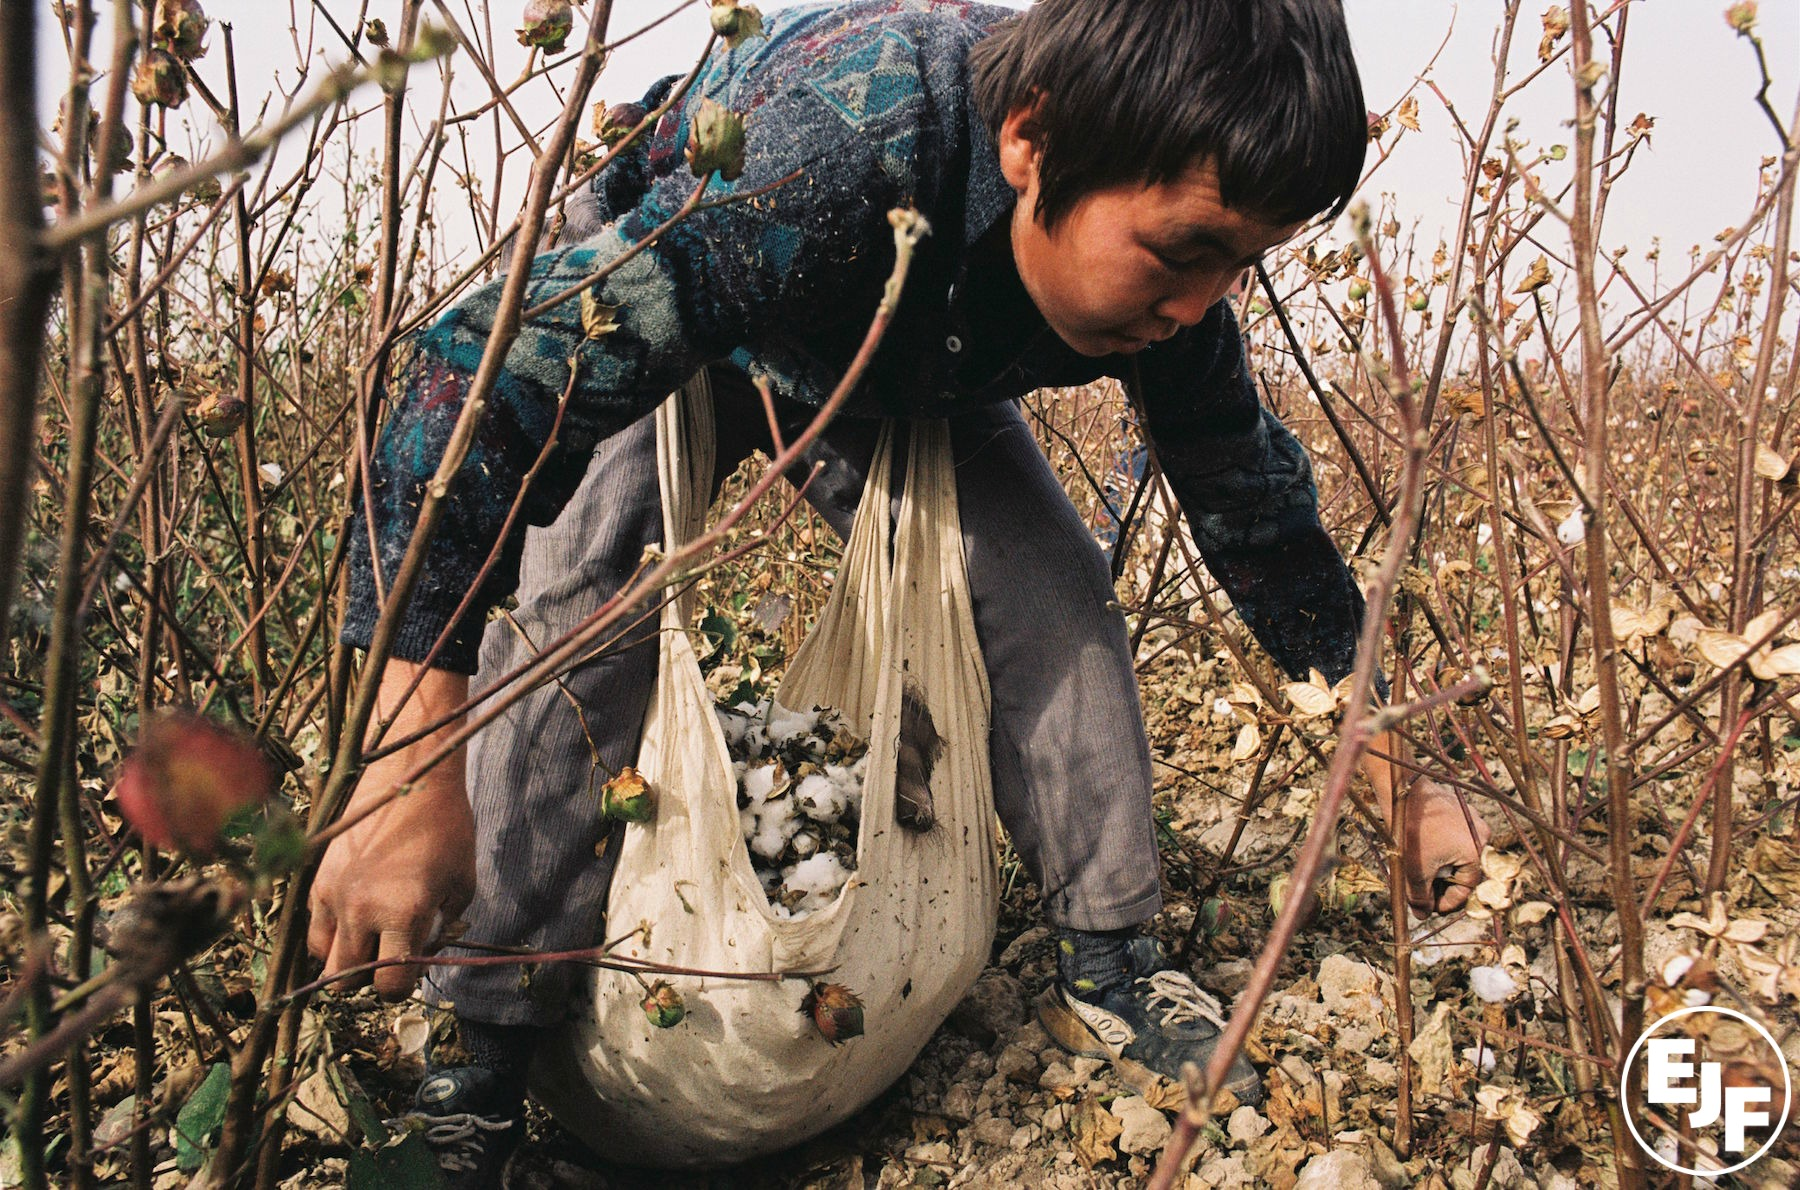 EJF invited by UK Government to discuss Uzbek cotton